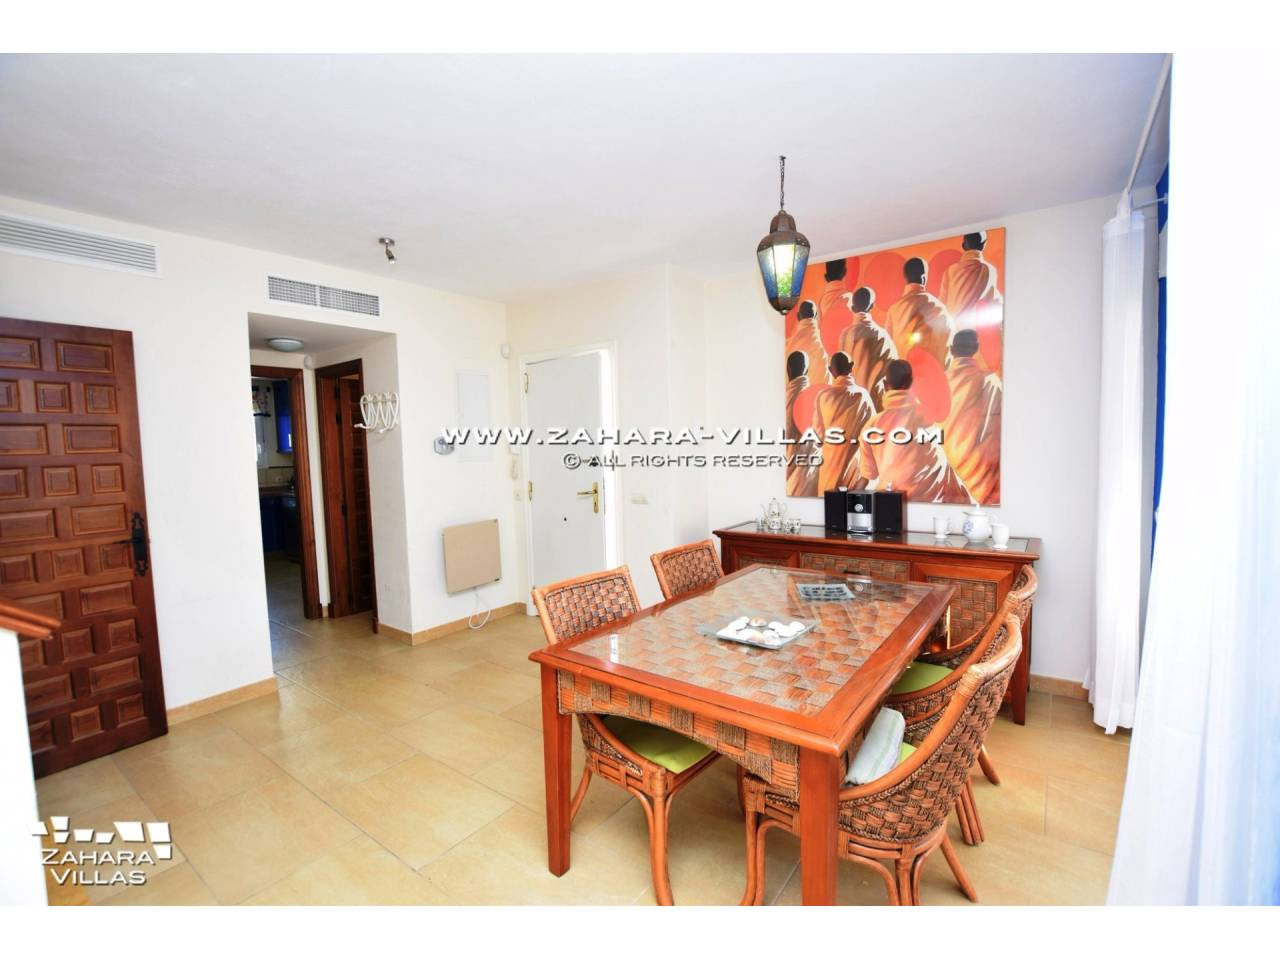 Imagen 2 de Semi-detached house for sale en Zahara de los Atunes